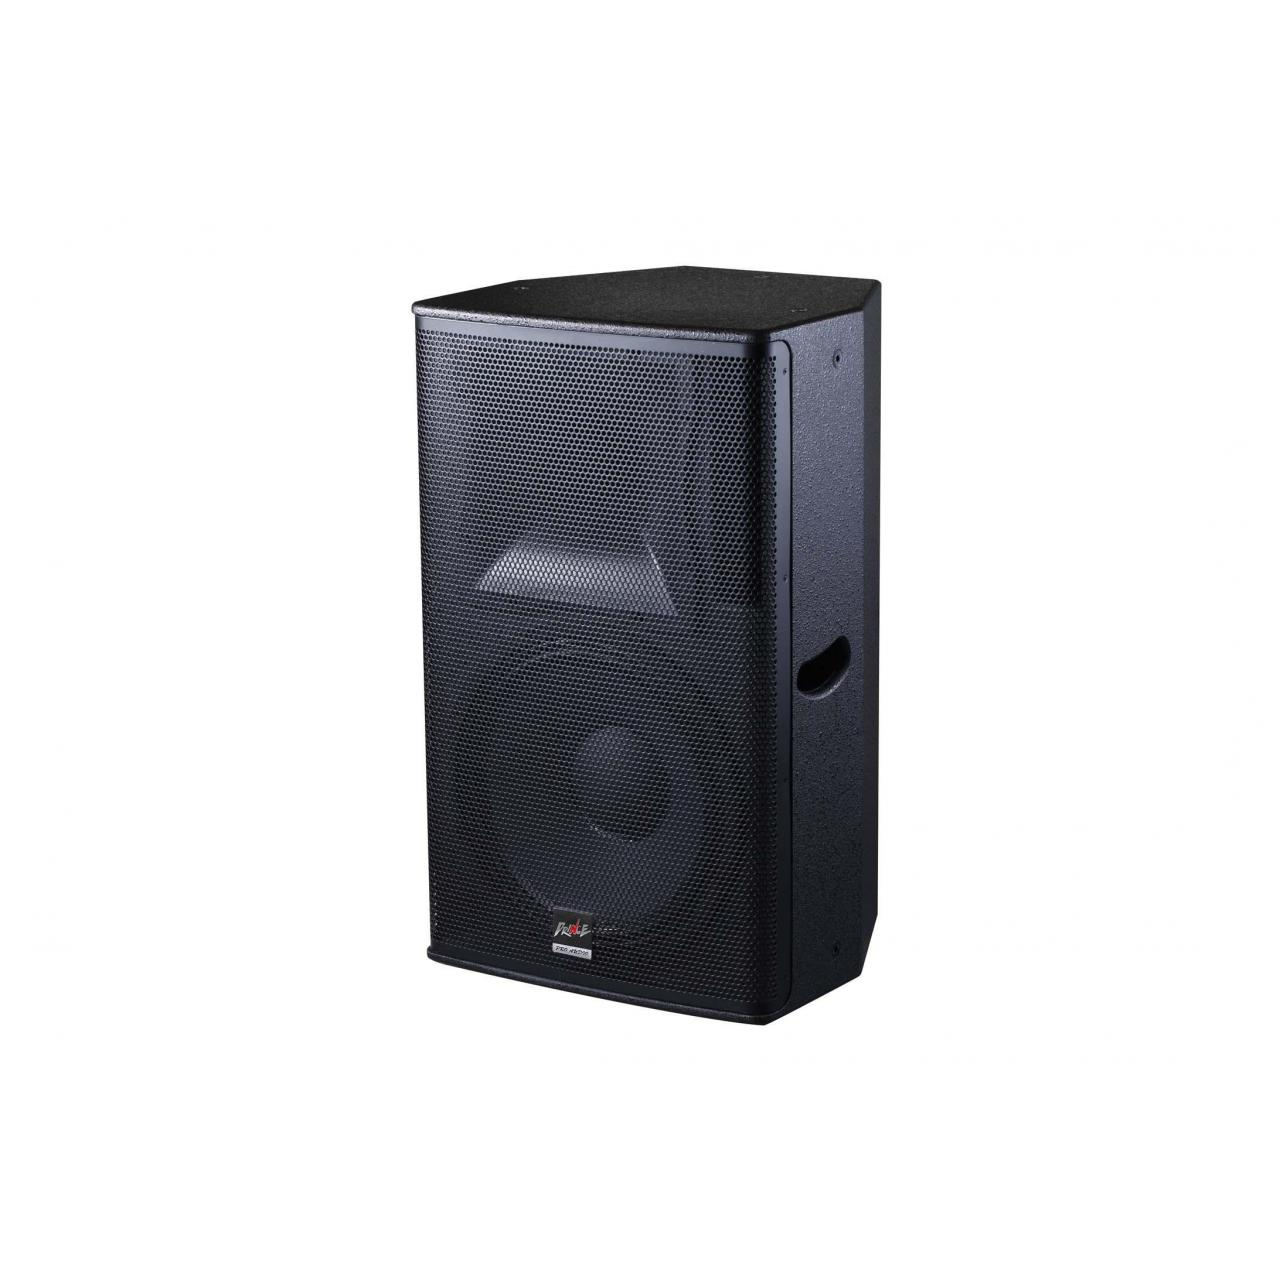 Multi-function speaker PR-312